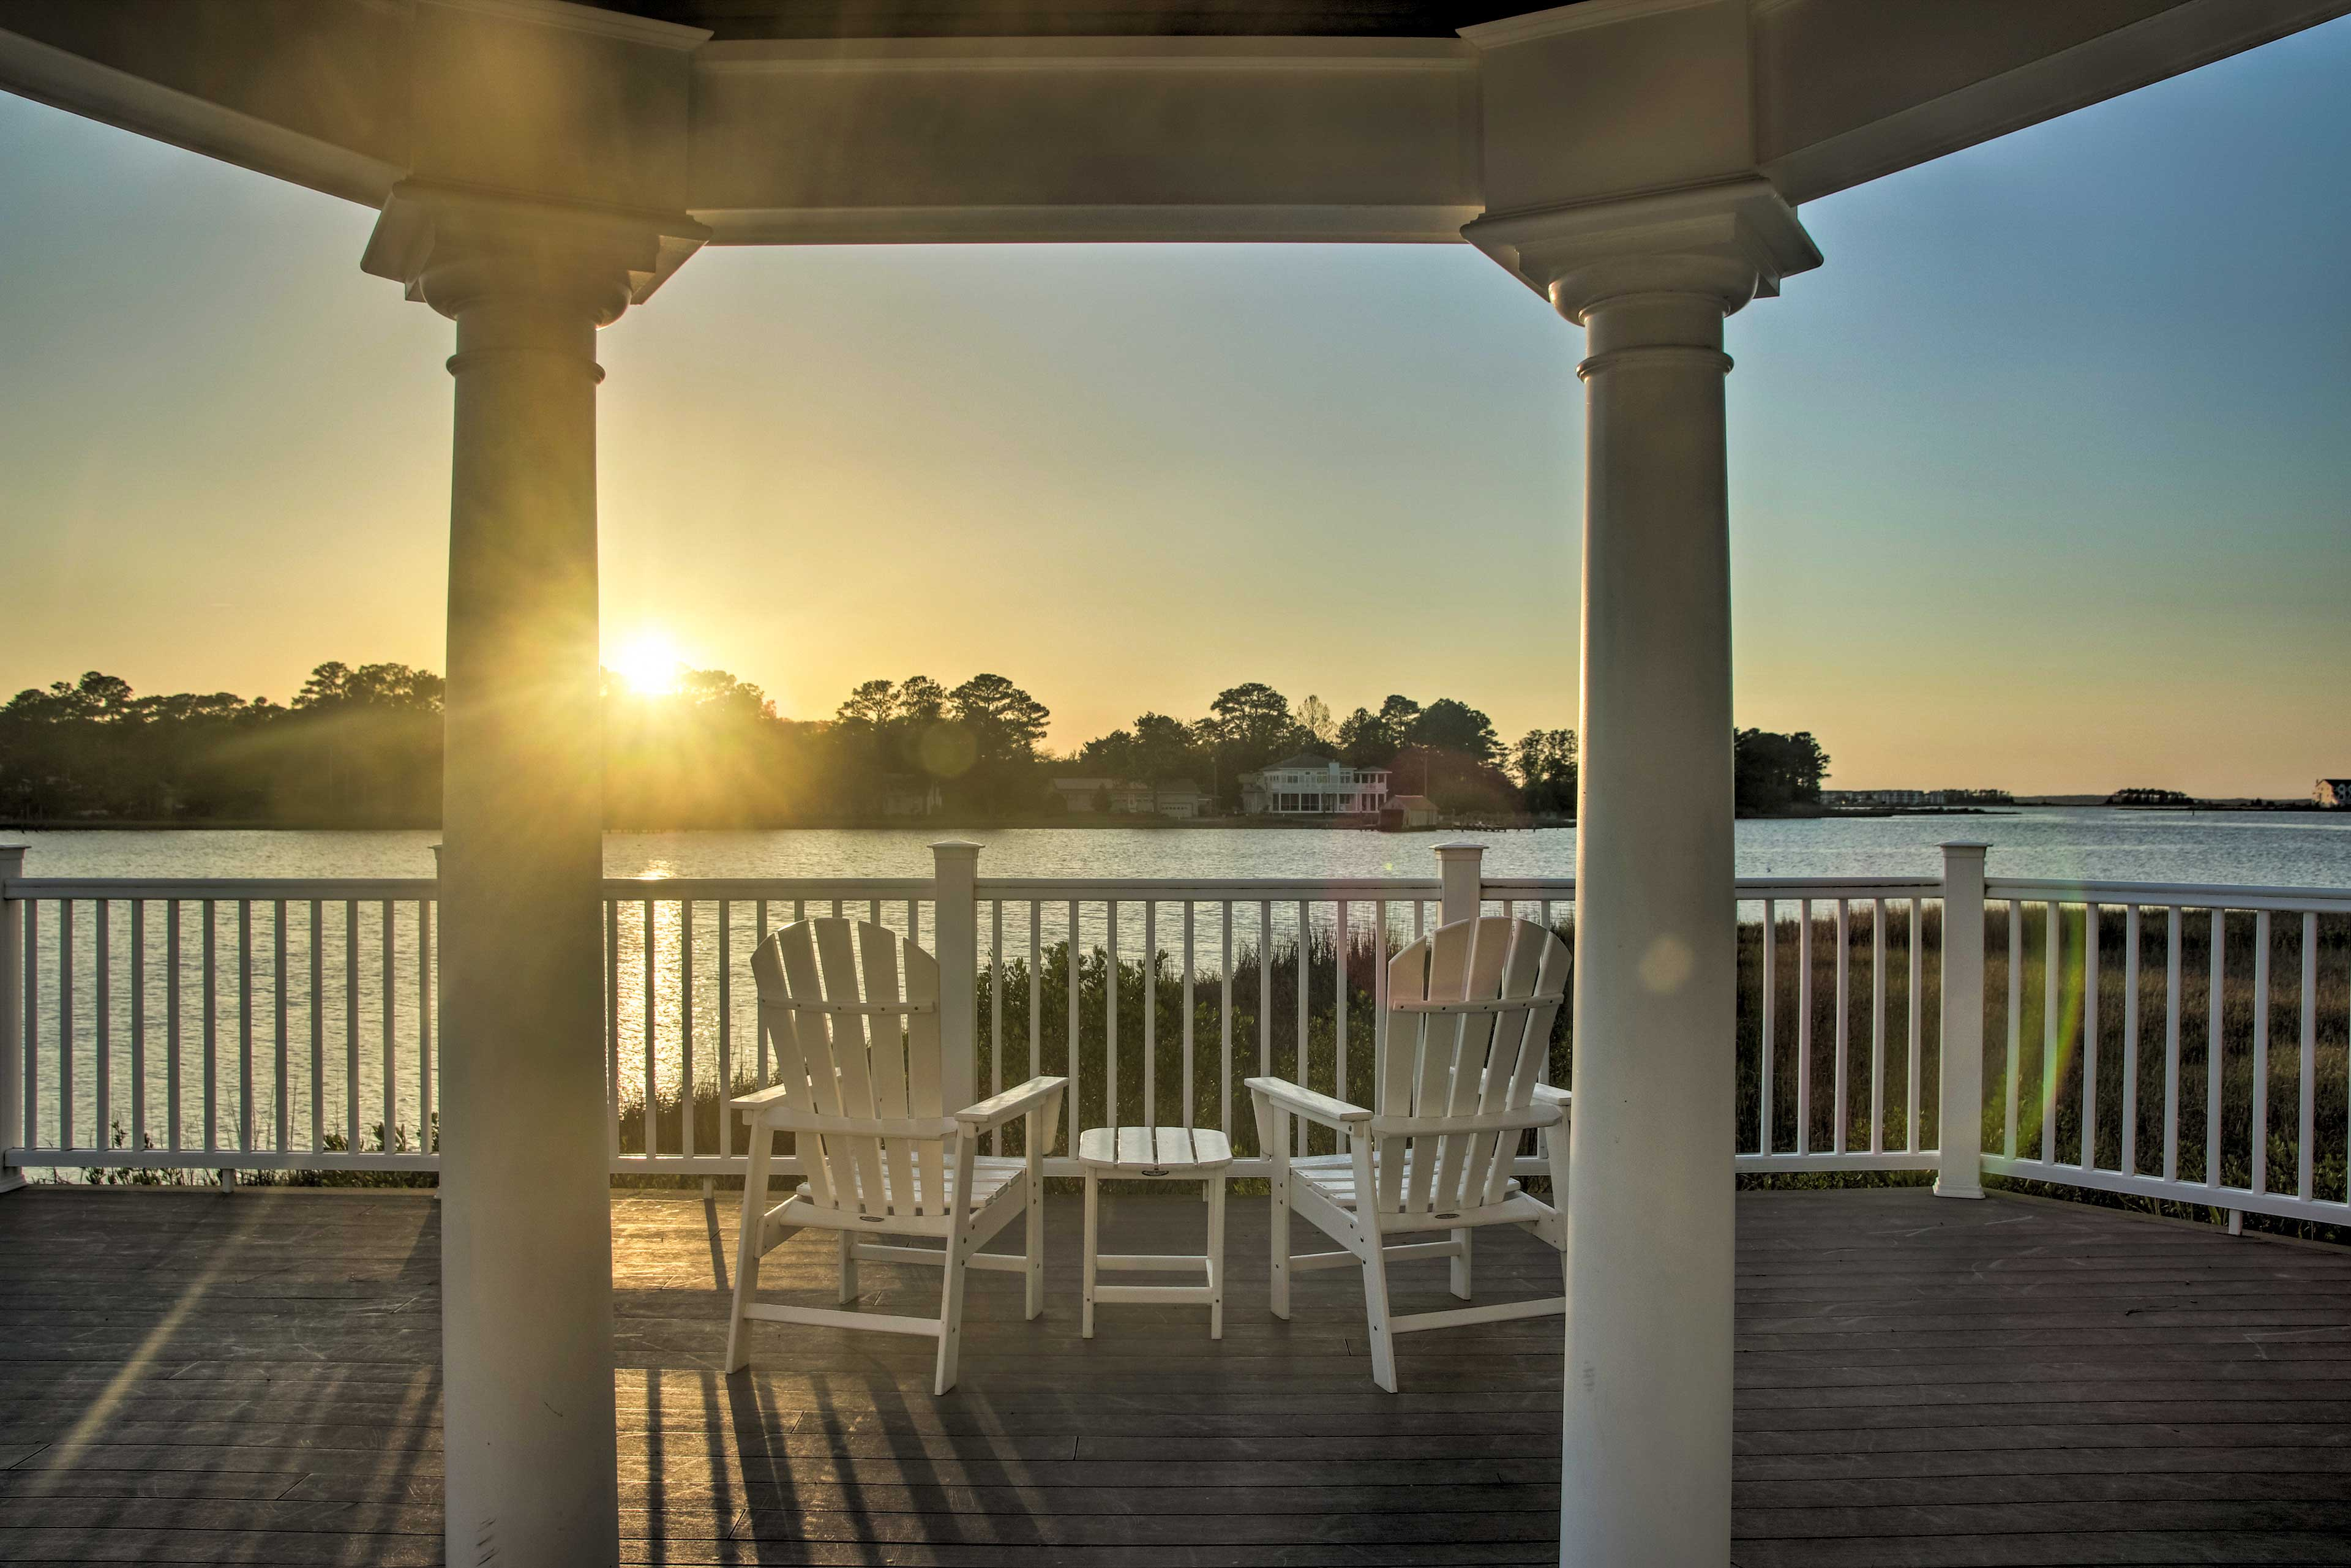 Bask in the warm glow of the sun in the Bayside at Bethany Lakes!